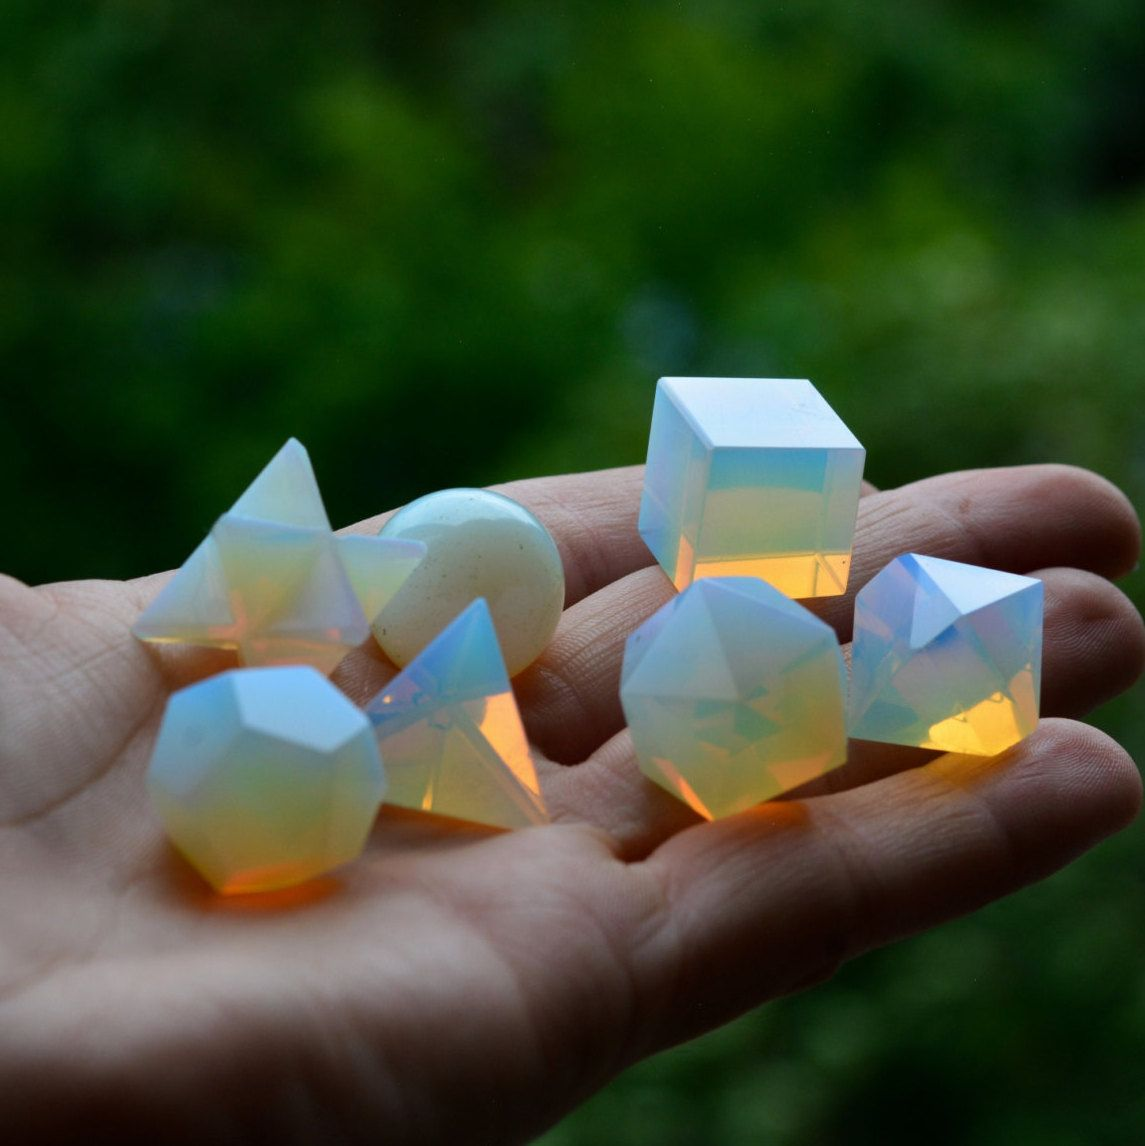 Fire Opalite Crystal Platonic Solids Sacred Geometry Set With Merkaba Star !! by PACIFICMINERALS on Etsy